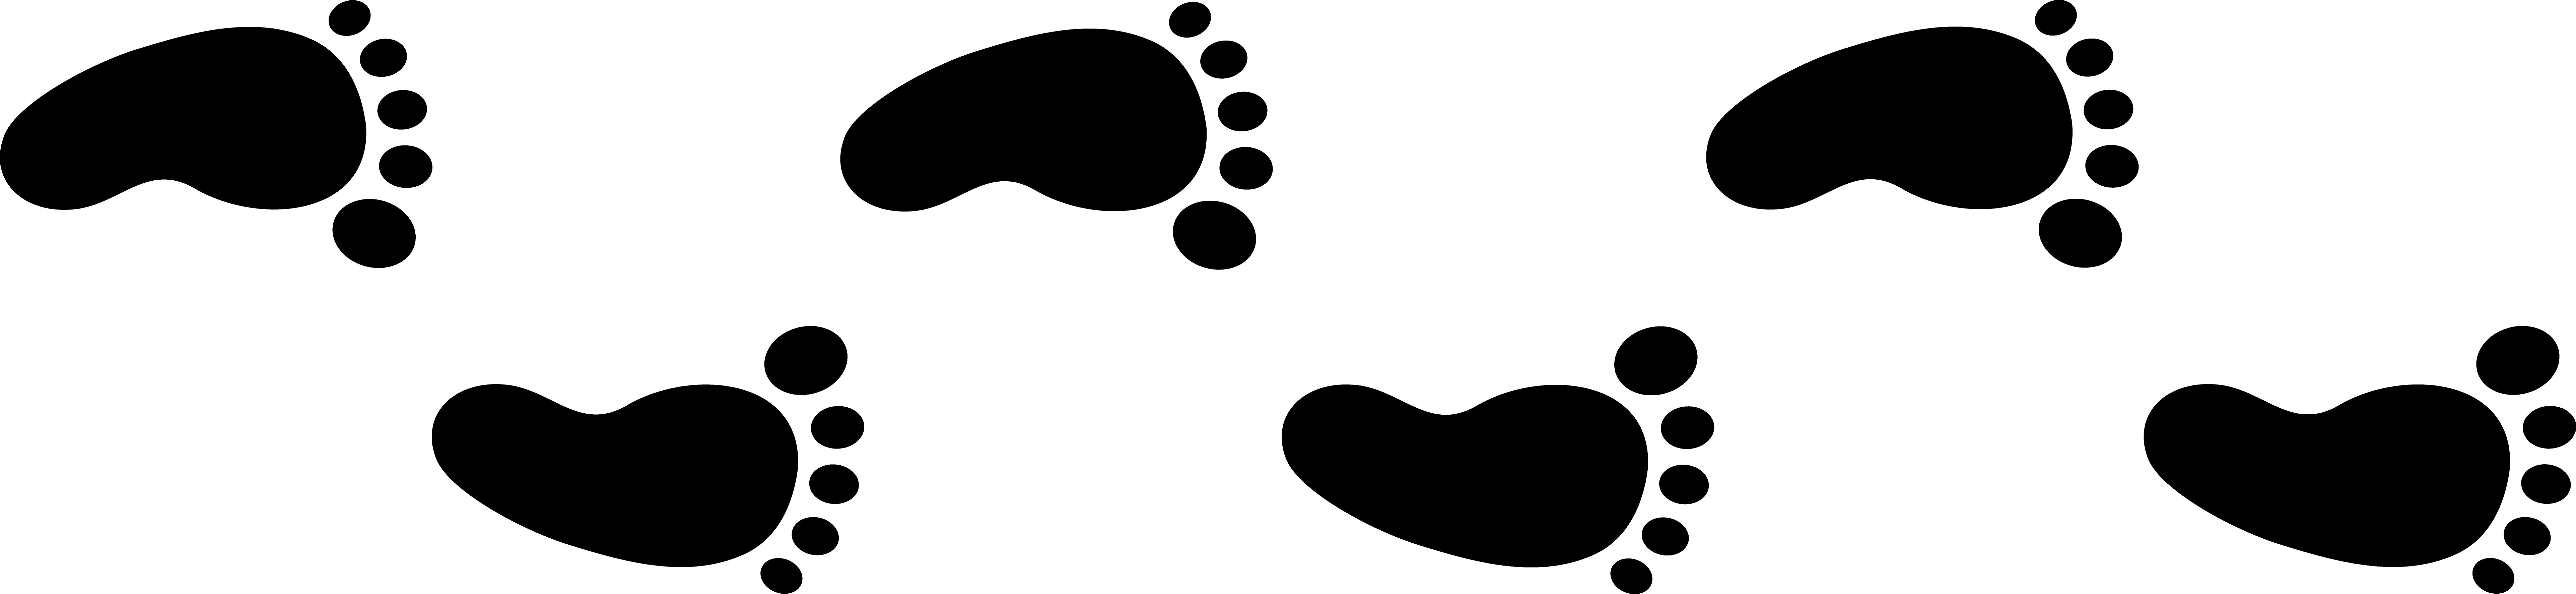 Past news and events. Hike clipart footprint